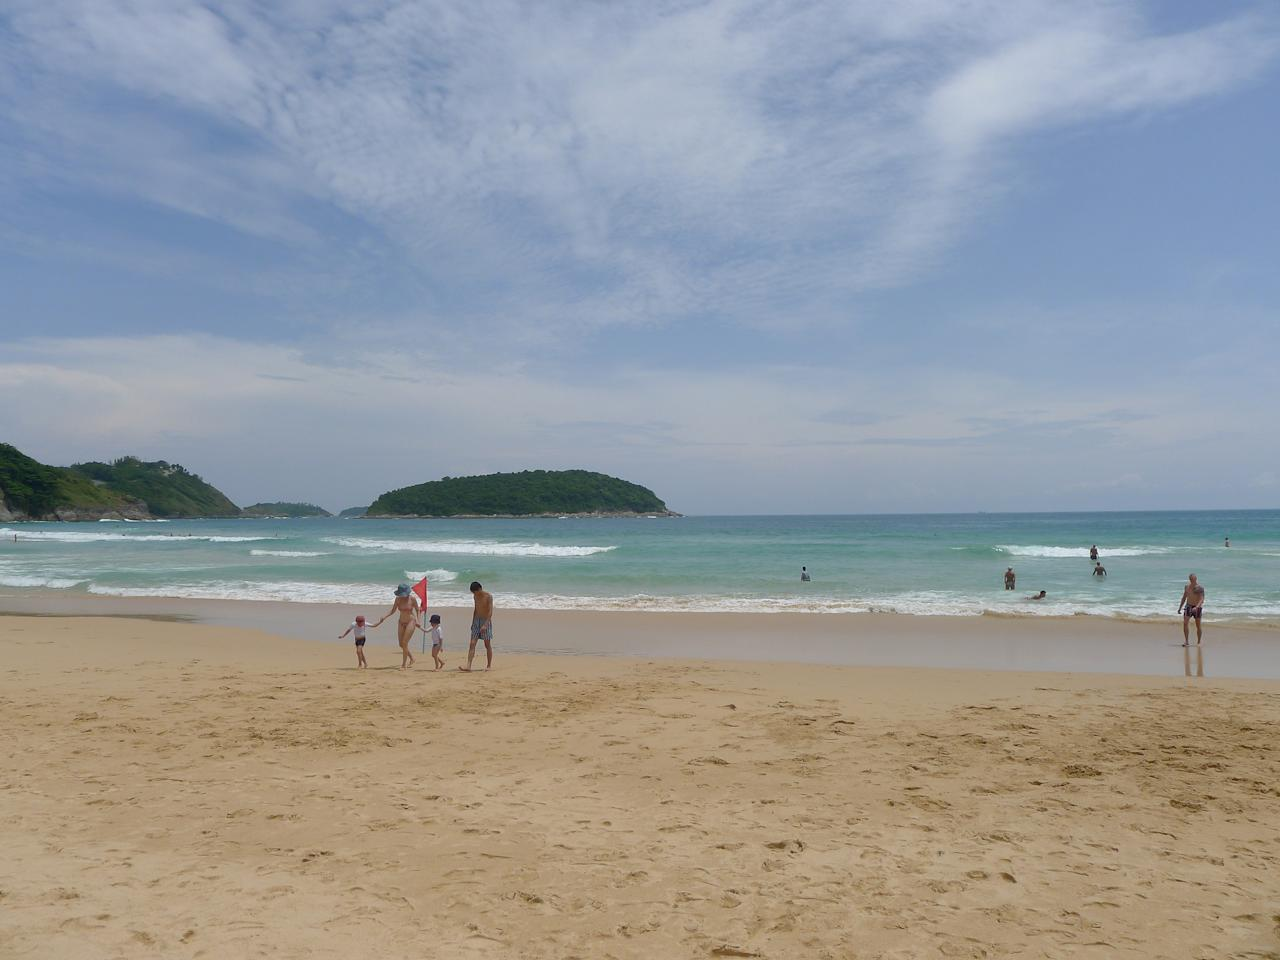 "<p>No. 8 Most Affordable Beaches: Thailand<br /> Sunscreen: $8.49<br /> Water: $0.37<br /> Beer: $2.72<br /> Ice Cream: $0.93<br /> Lunch: $9.17<br /><b>Total: $21.68</b><br /> (Photo: Nai Harn Beach in Phuket, Thailand/wales_gibbons/<a rel=""nofollow"">Flickr</a>) </p>"